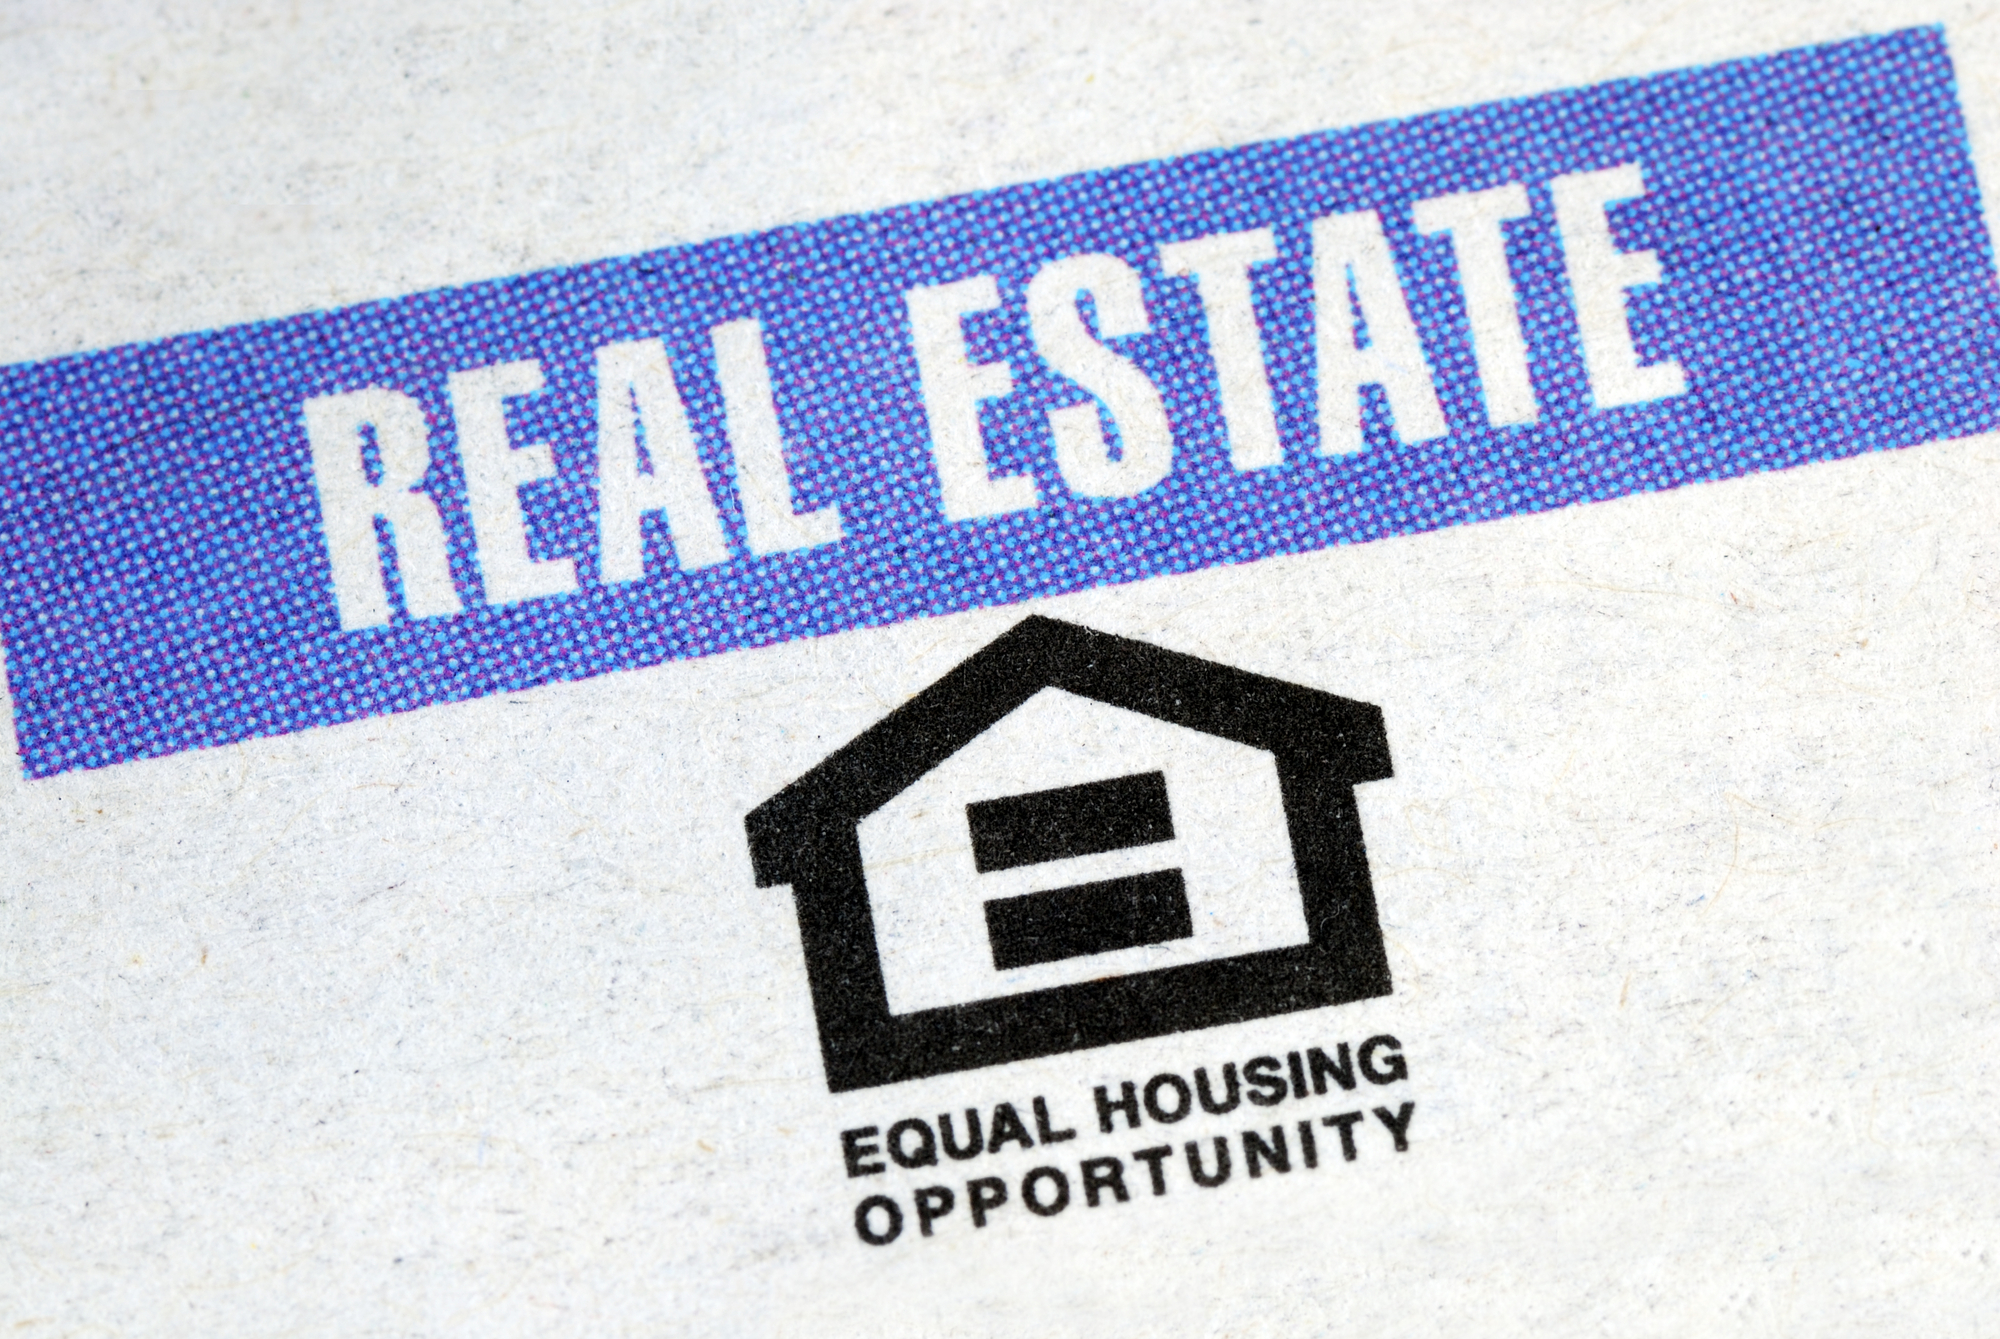 Equal housing opportunity-1